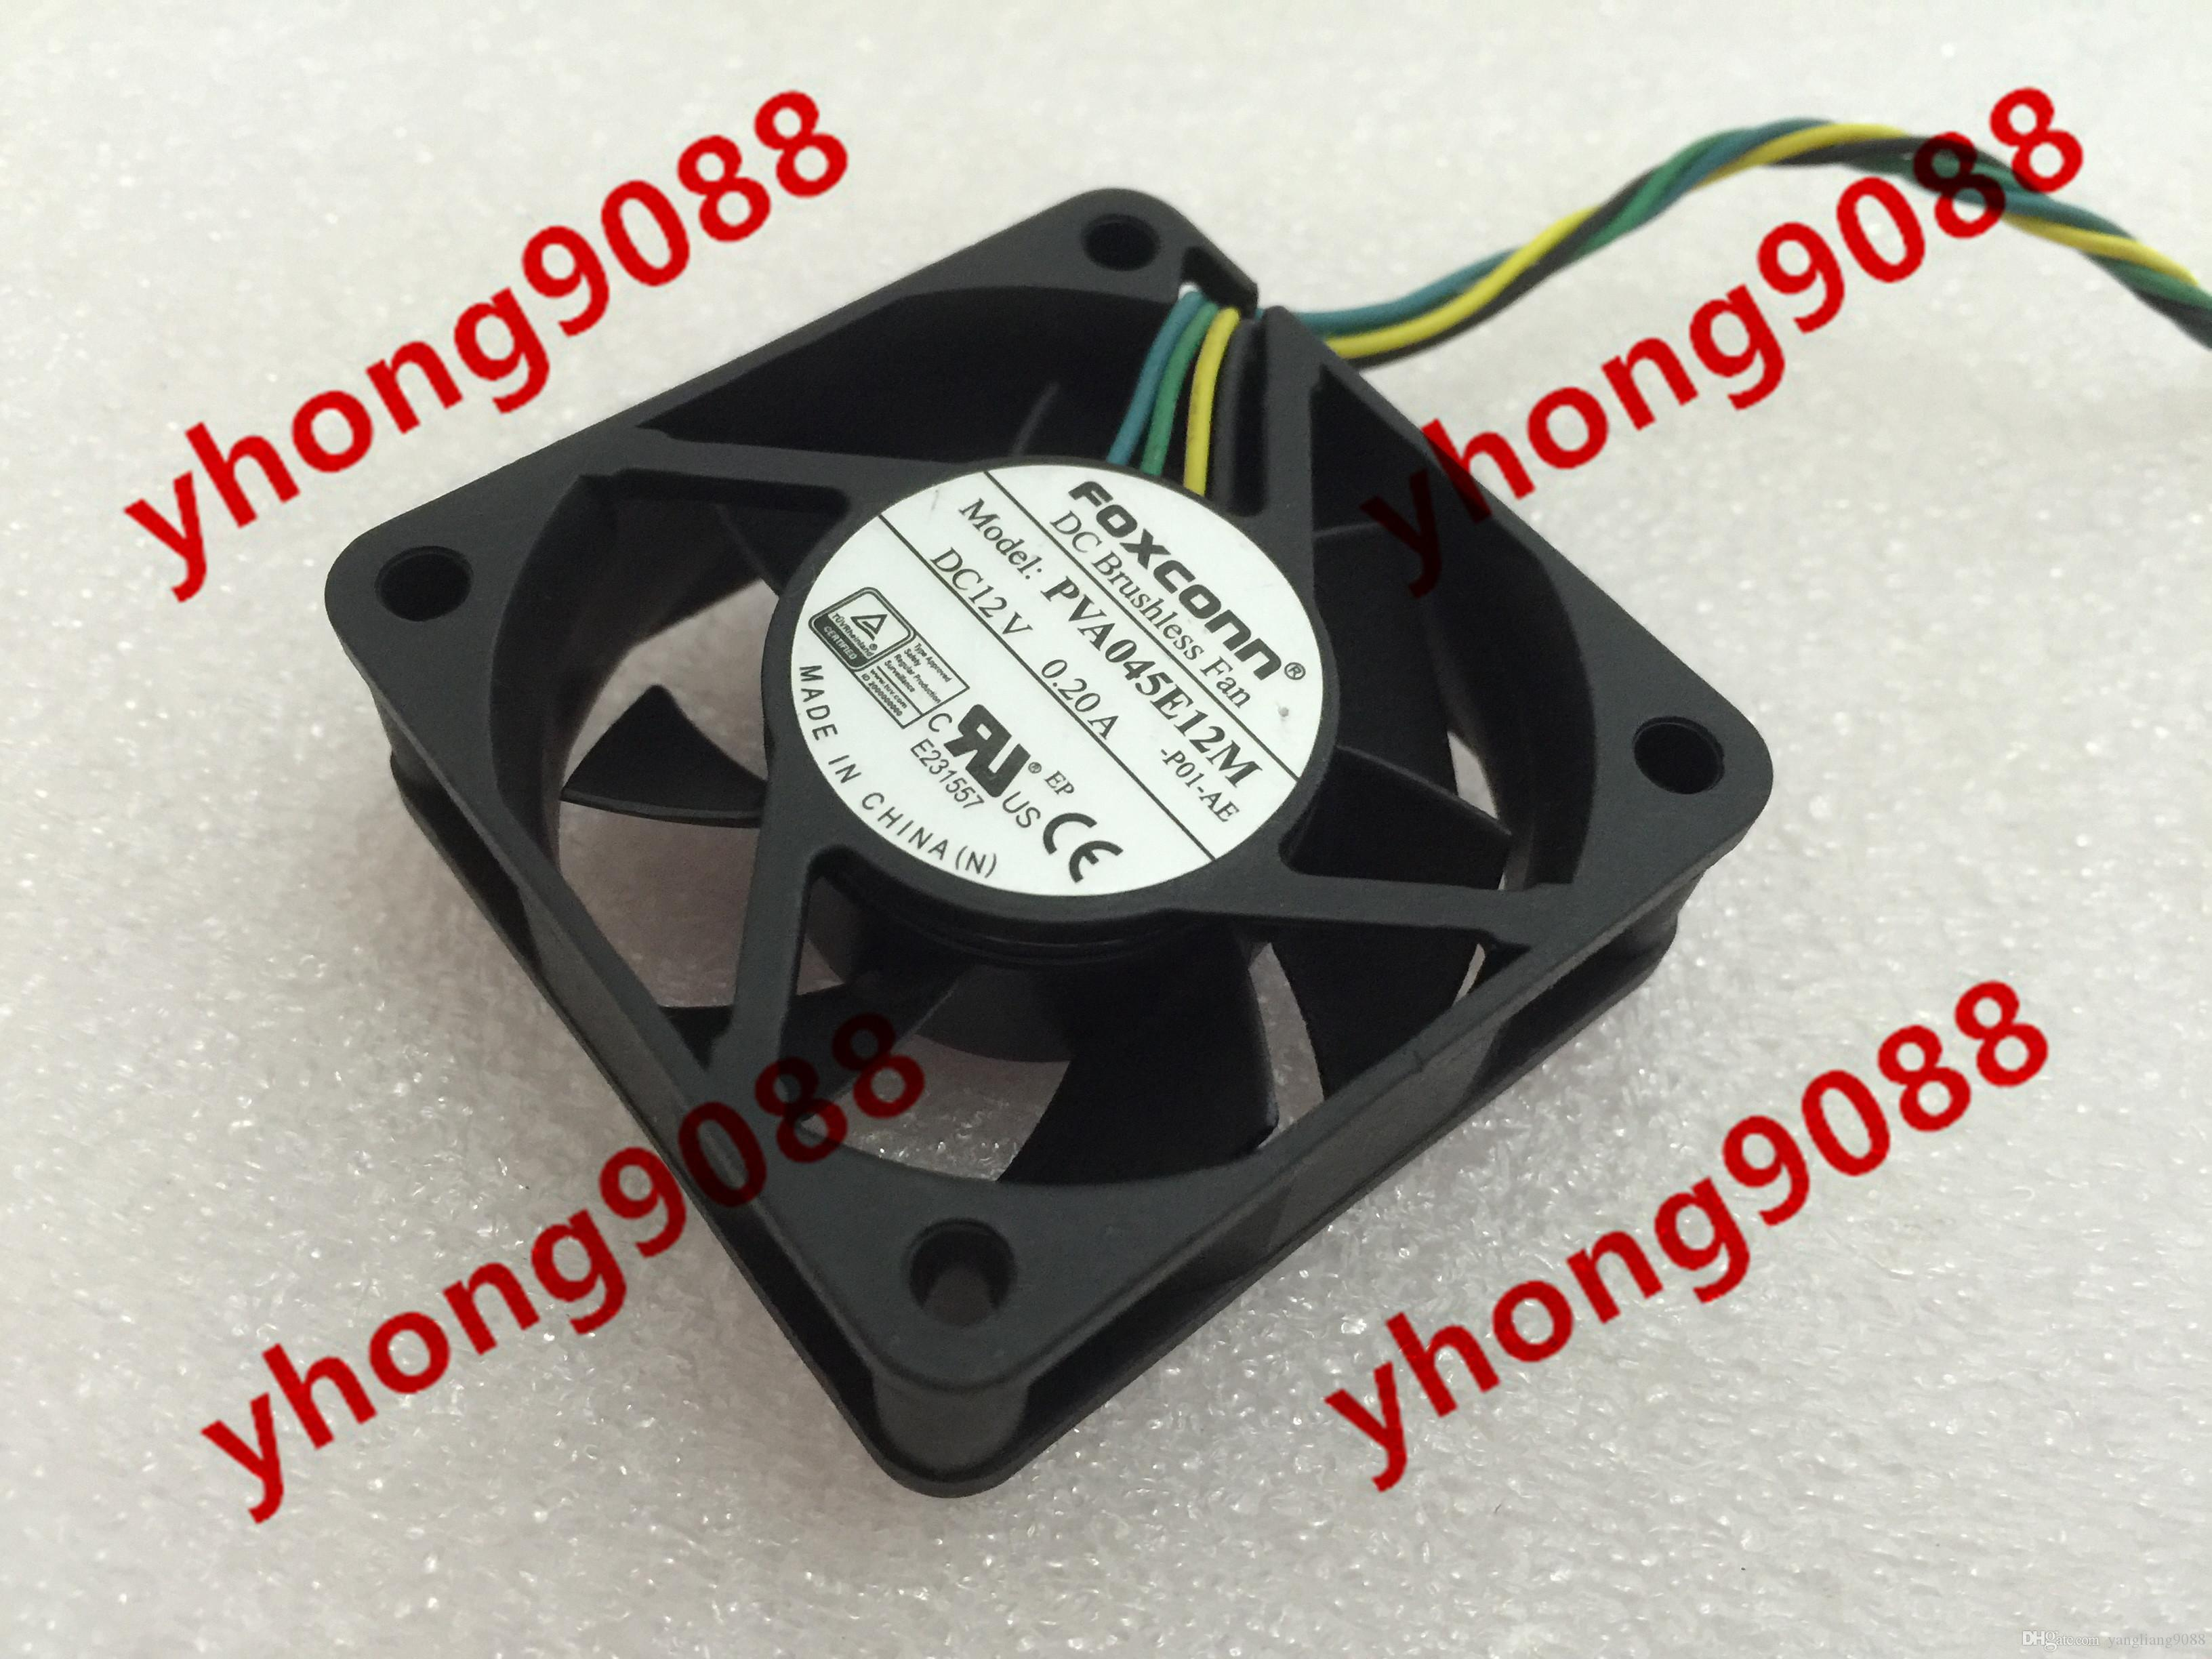 For FOXCONN PVA045E12M -P01-AE DC 12V 0.20A, 4-wire 4-pin Connector 40mm,  45x45x15mm Server Square Fan Cooling Fan PVA045E12M-P01-AE Online with ...